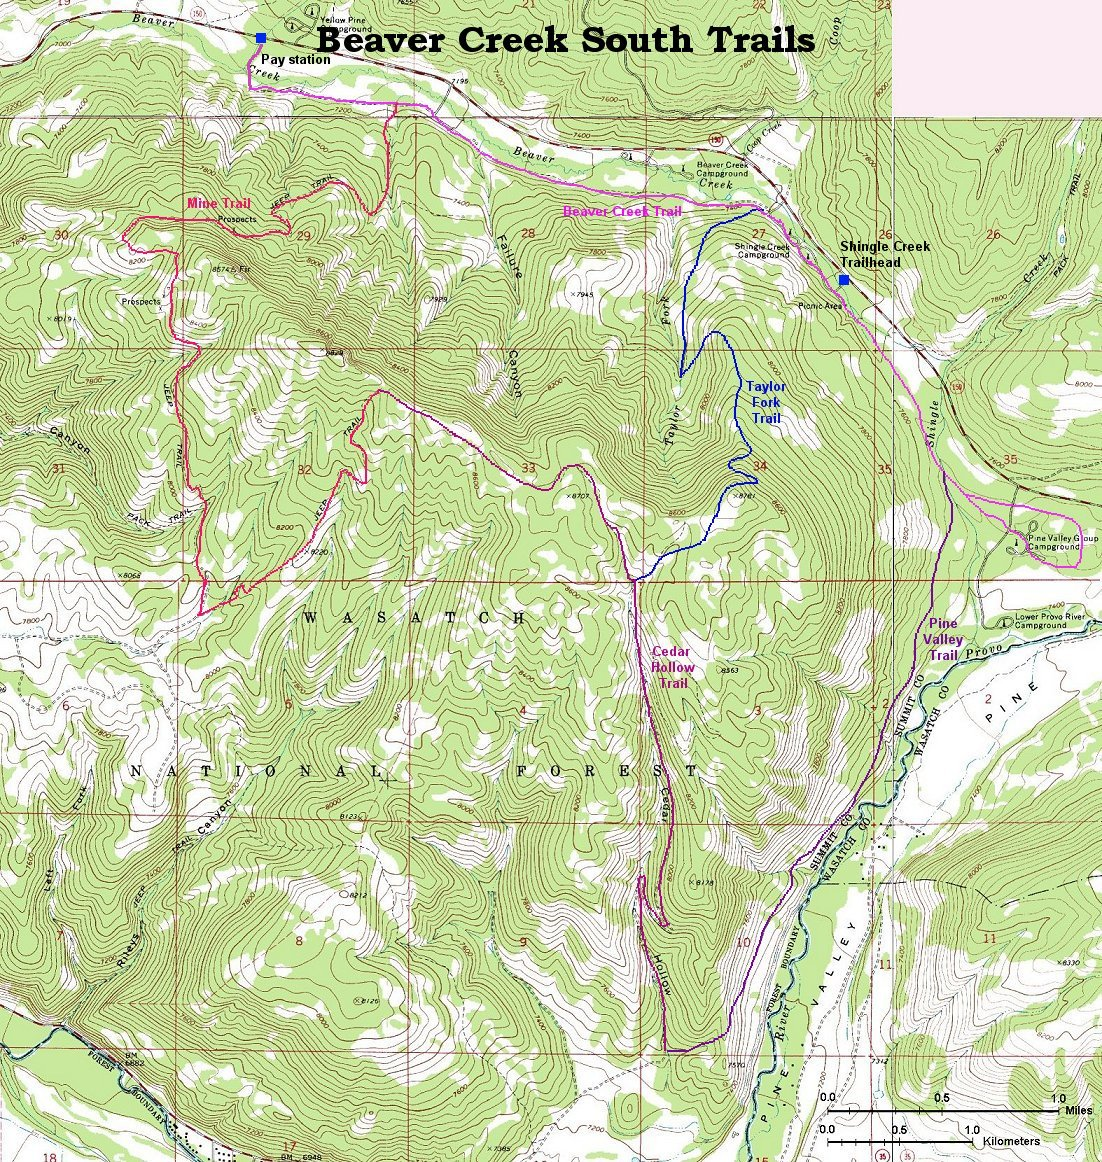 Cross Country Skiing In The Beaver Creek Area - Beavercreek trail map